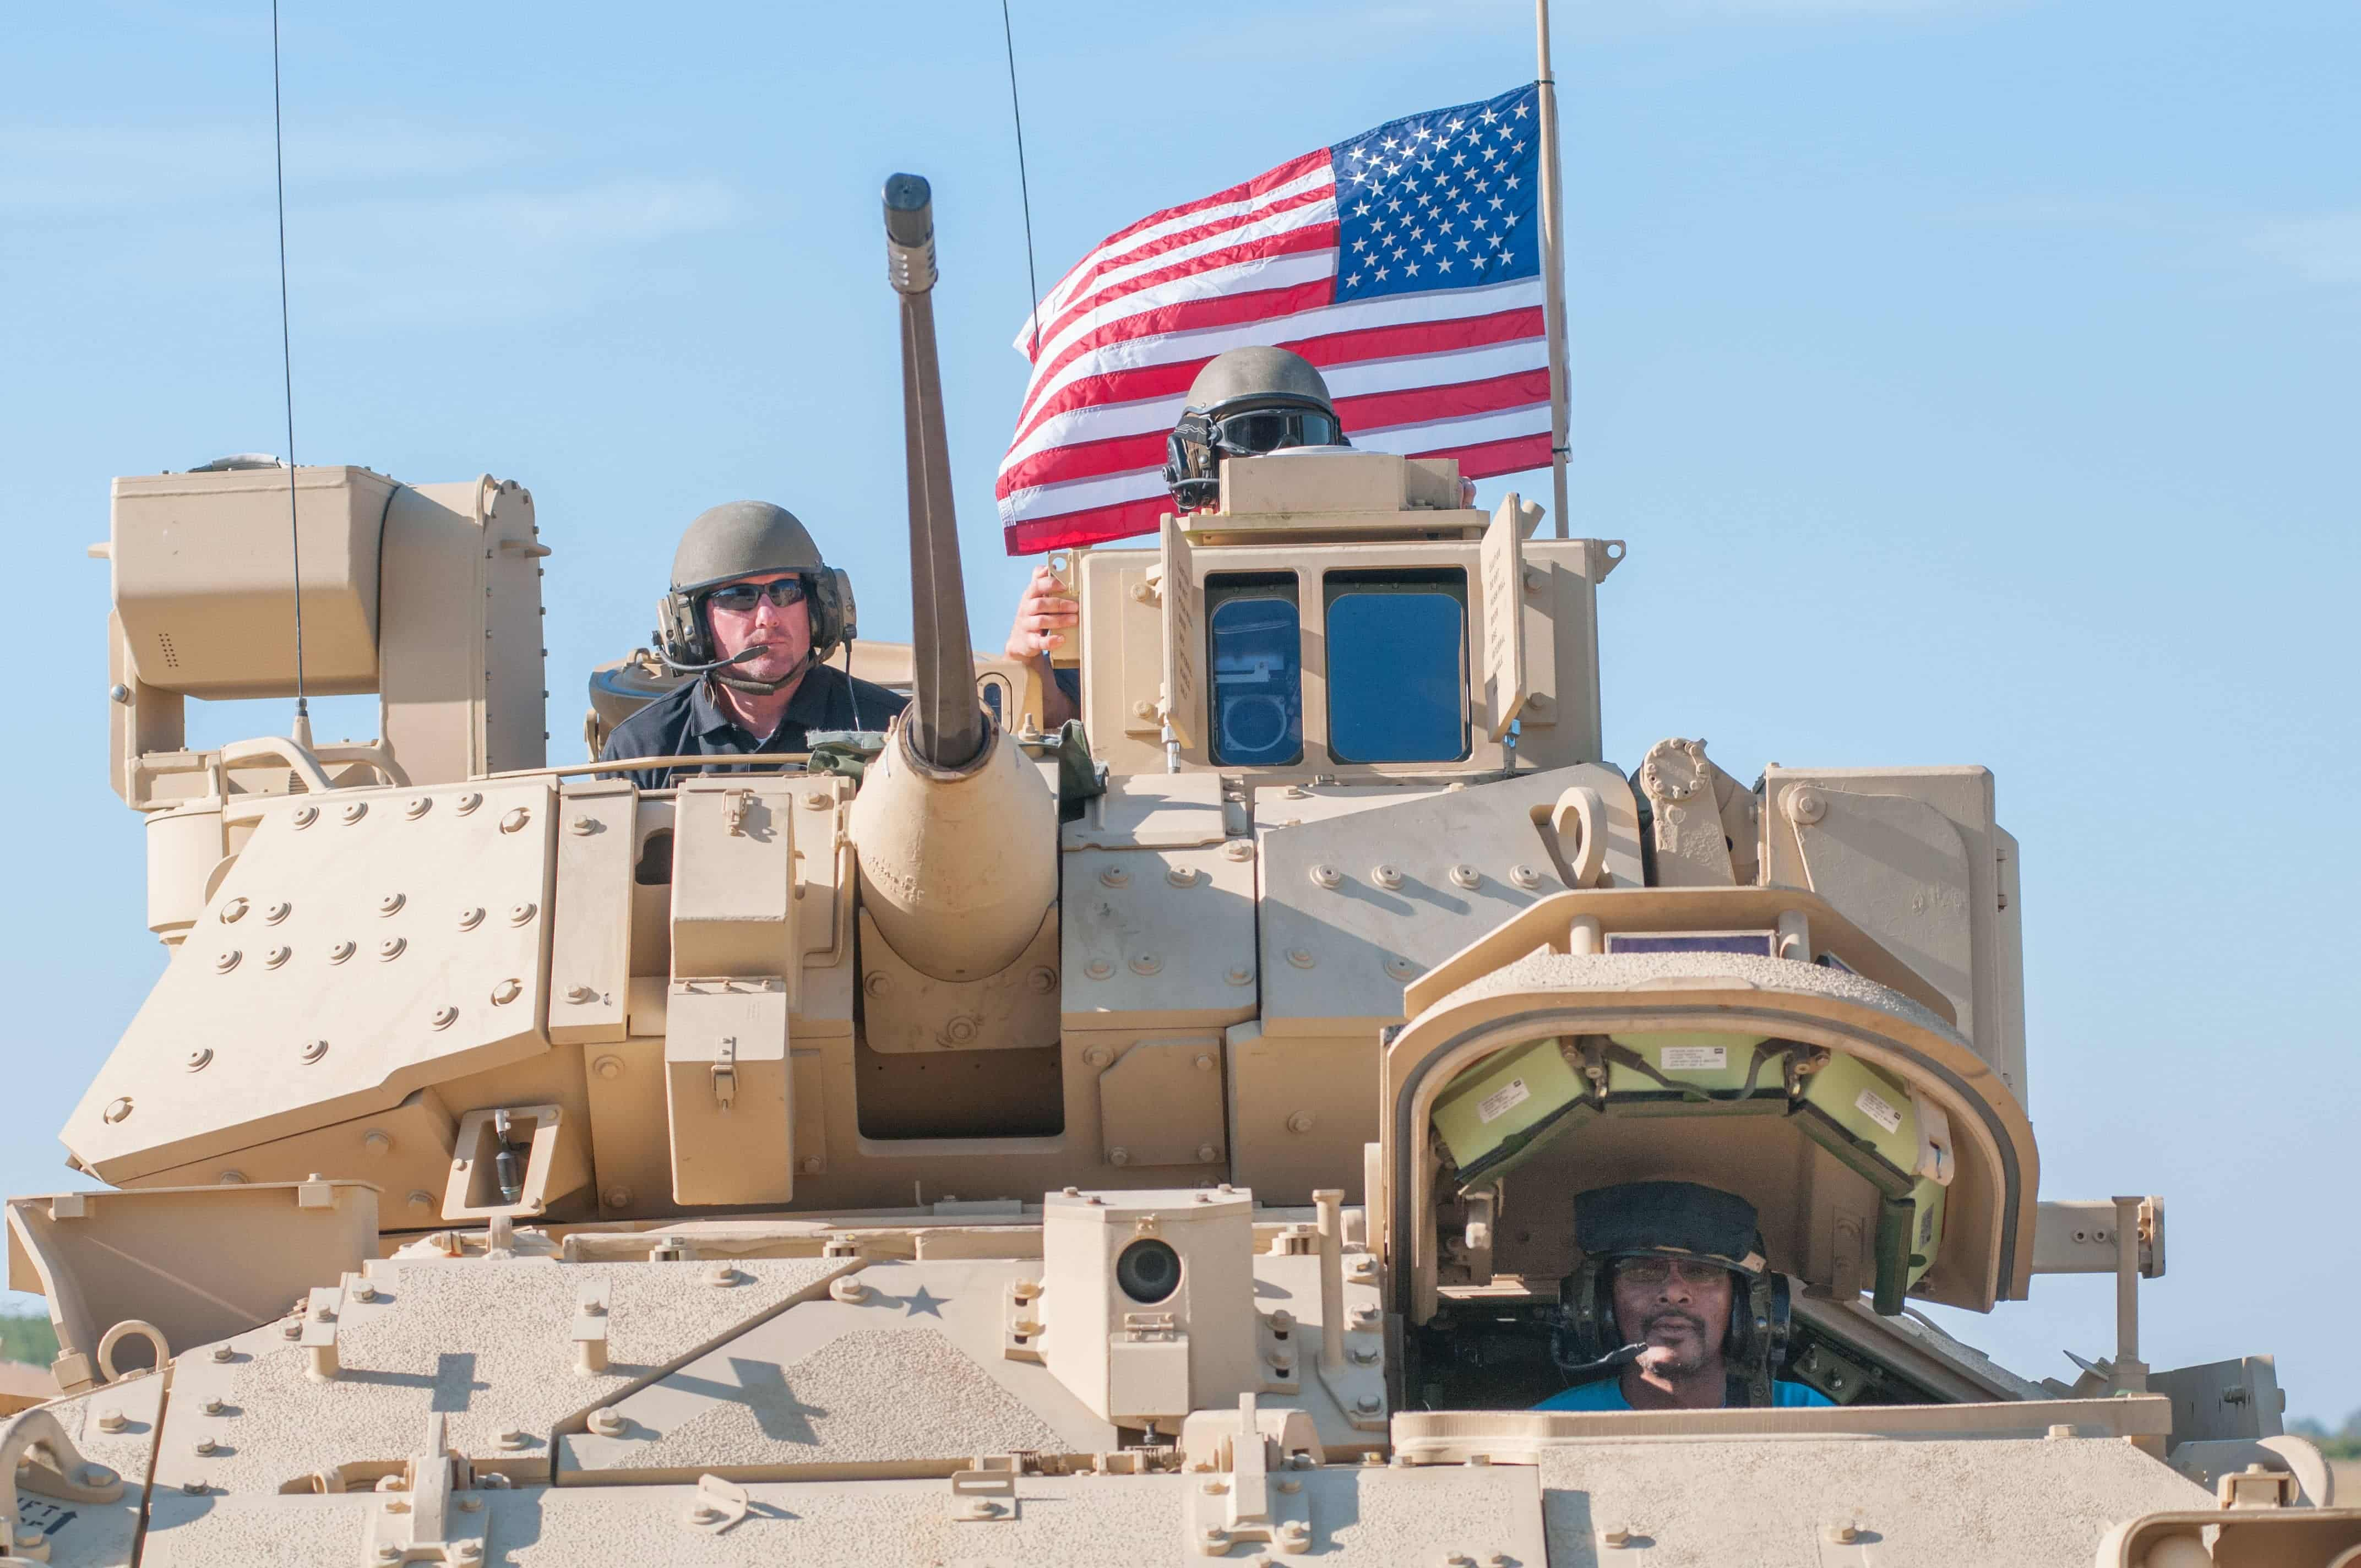 A civilian contractor and Soldier ride in a Bradley tank with an American flag in the background.